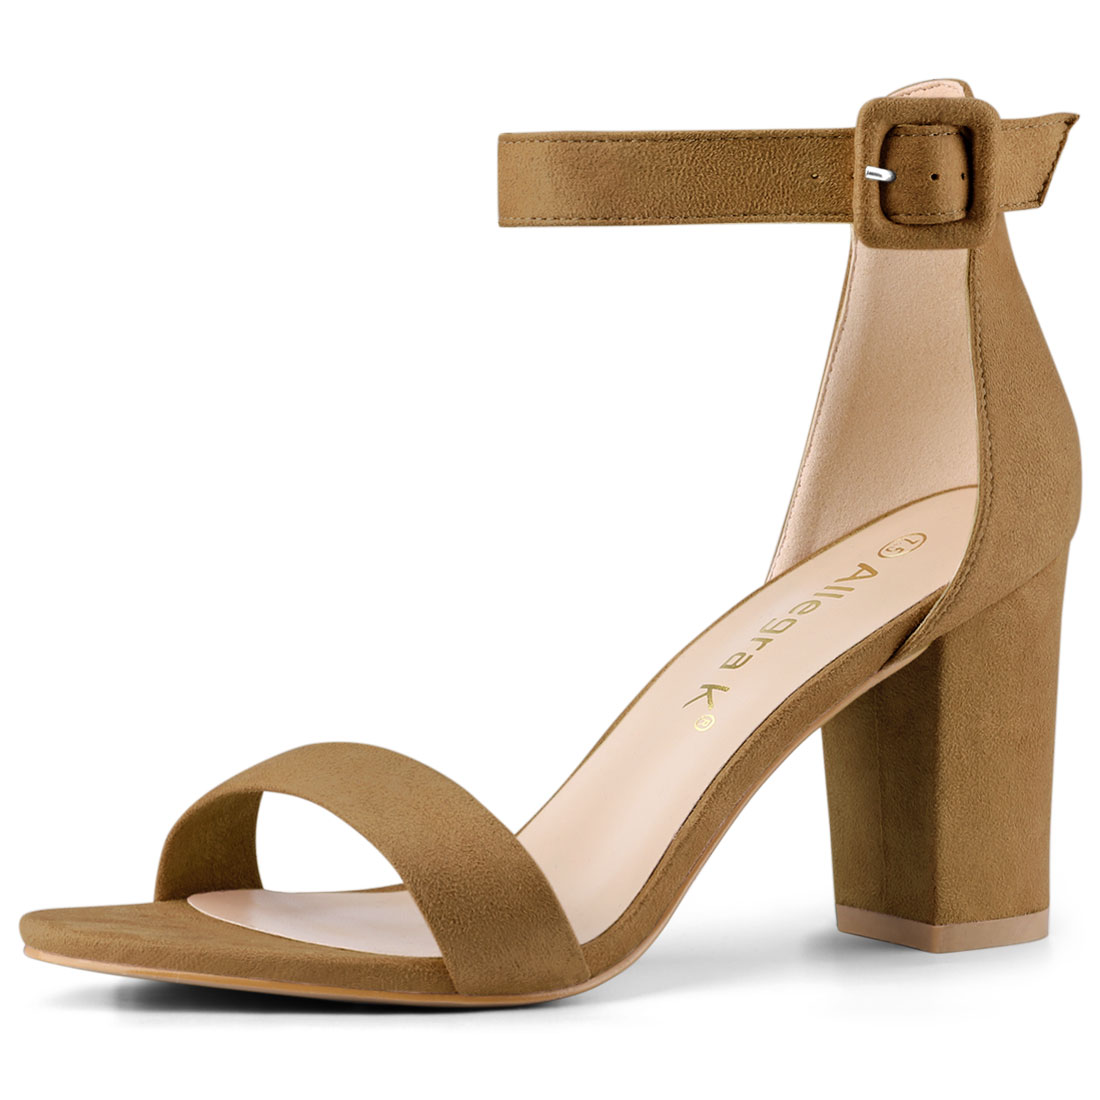 Woman Open Toe Chunky High Heel Ankle Strap Sandals Camel US 6